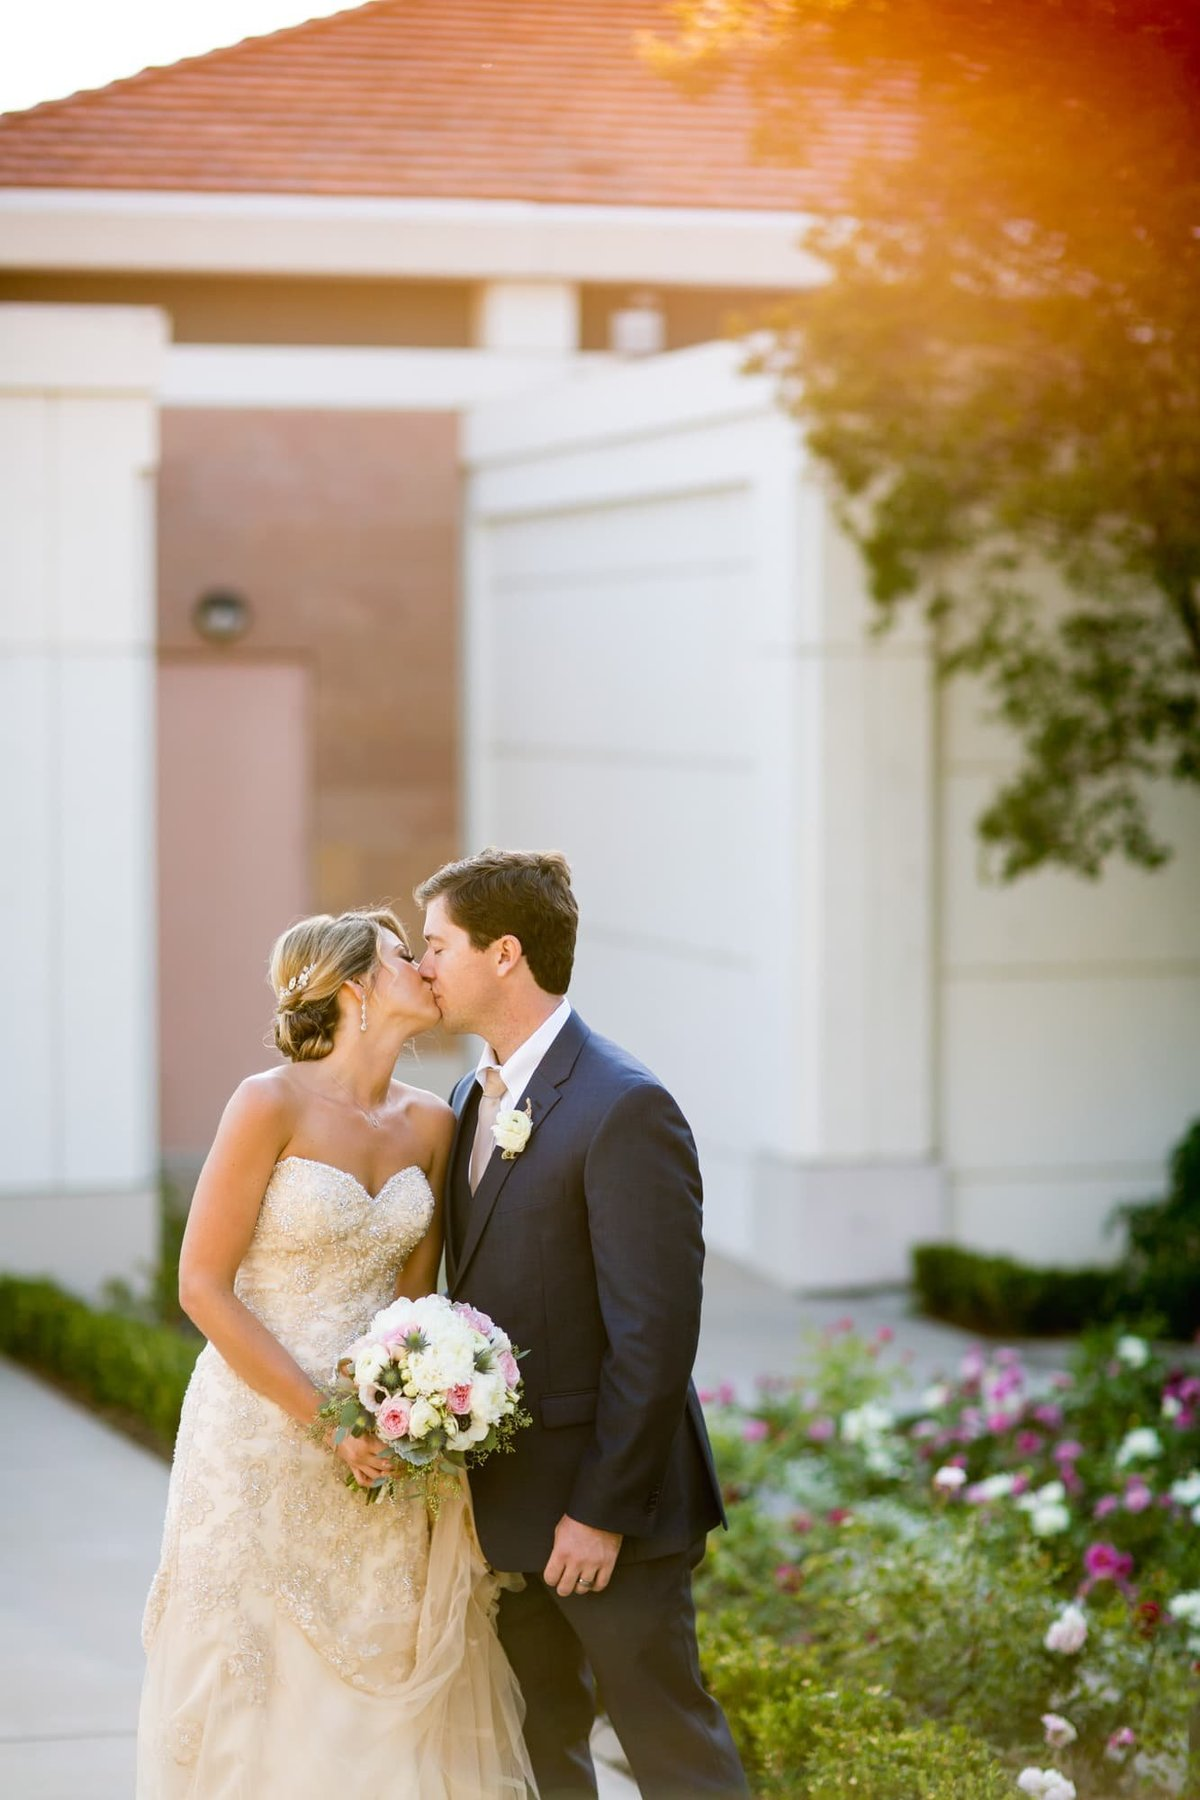 Bride and Groom share a kiss during their wedding shoot